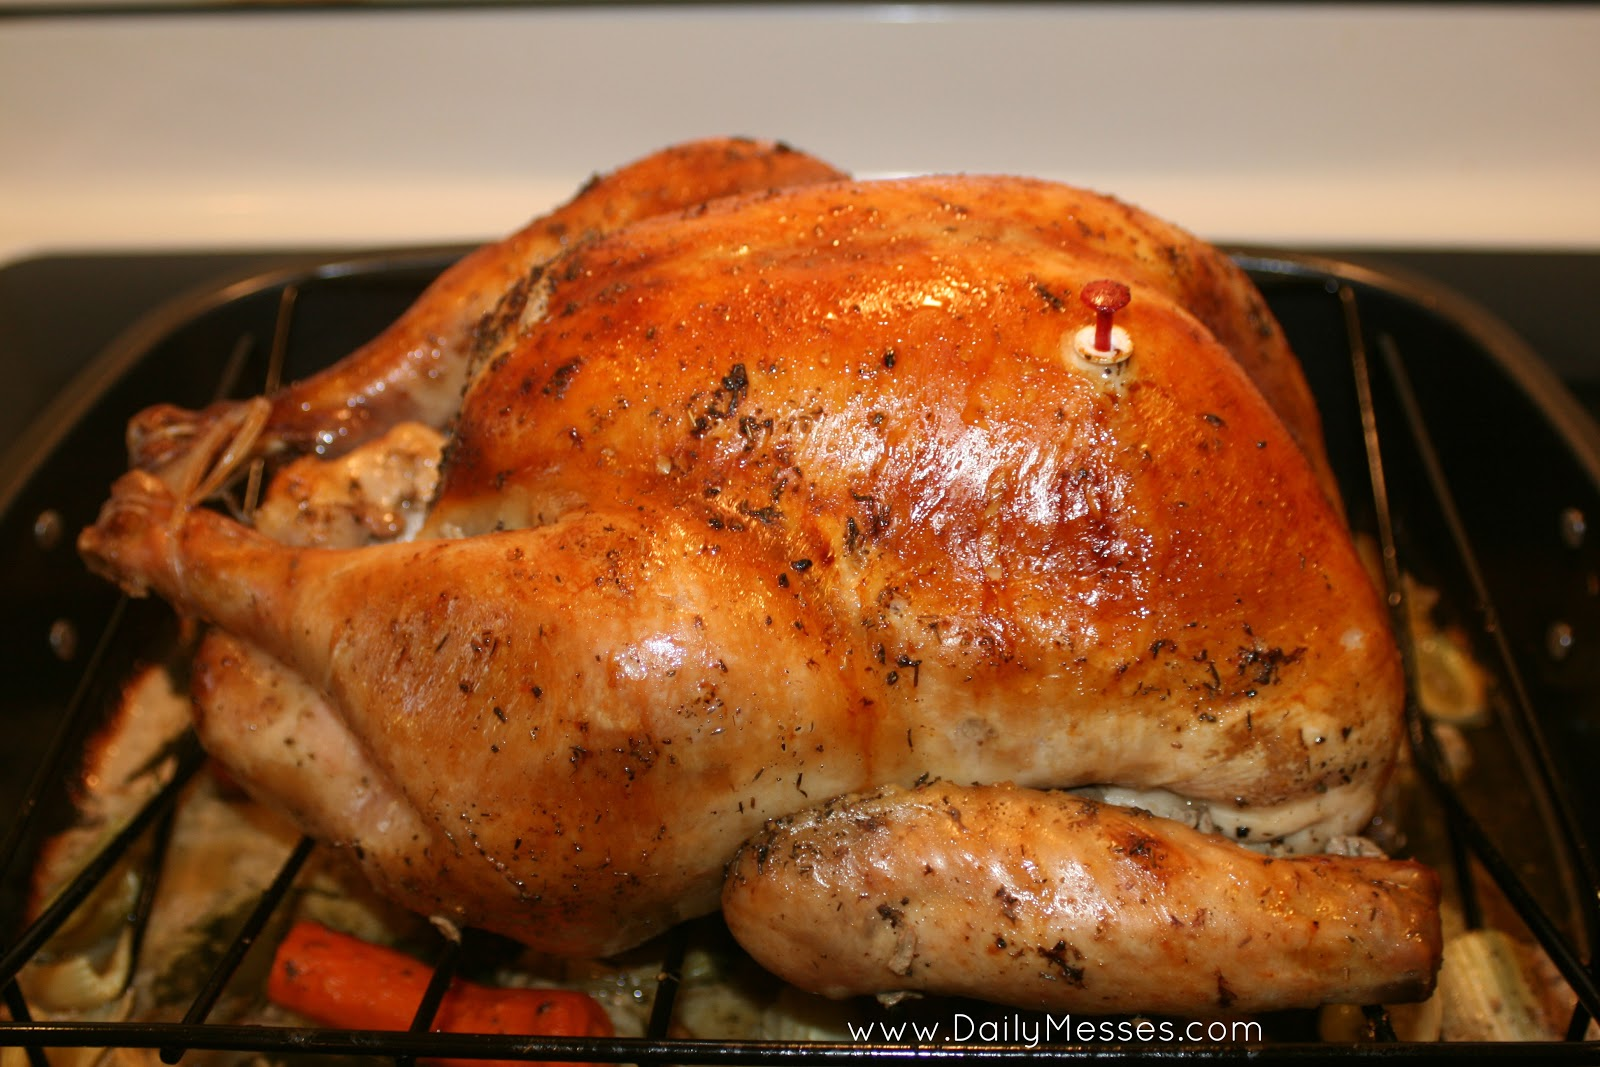 Daily Messes: How To Cook The Perfect Turkey